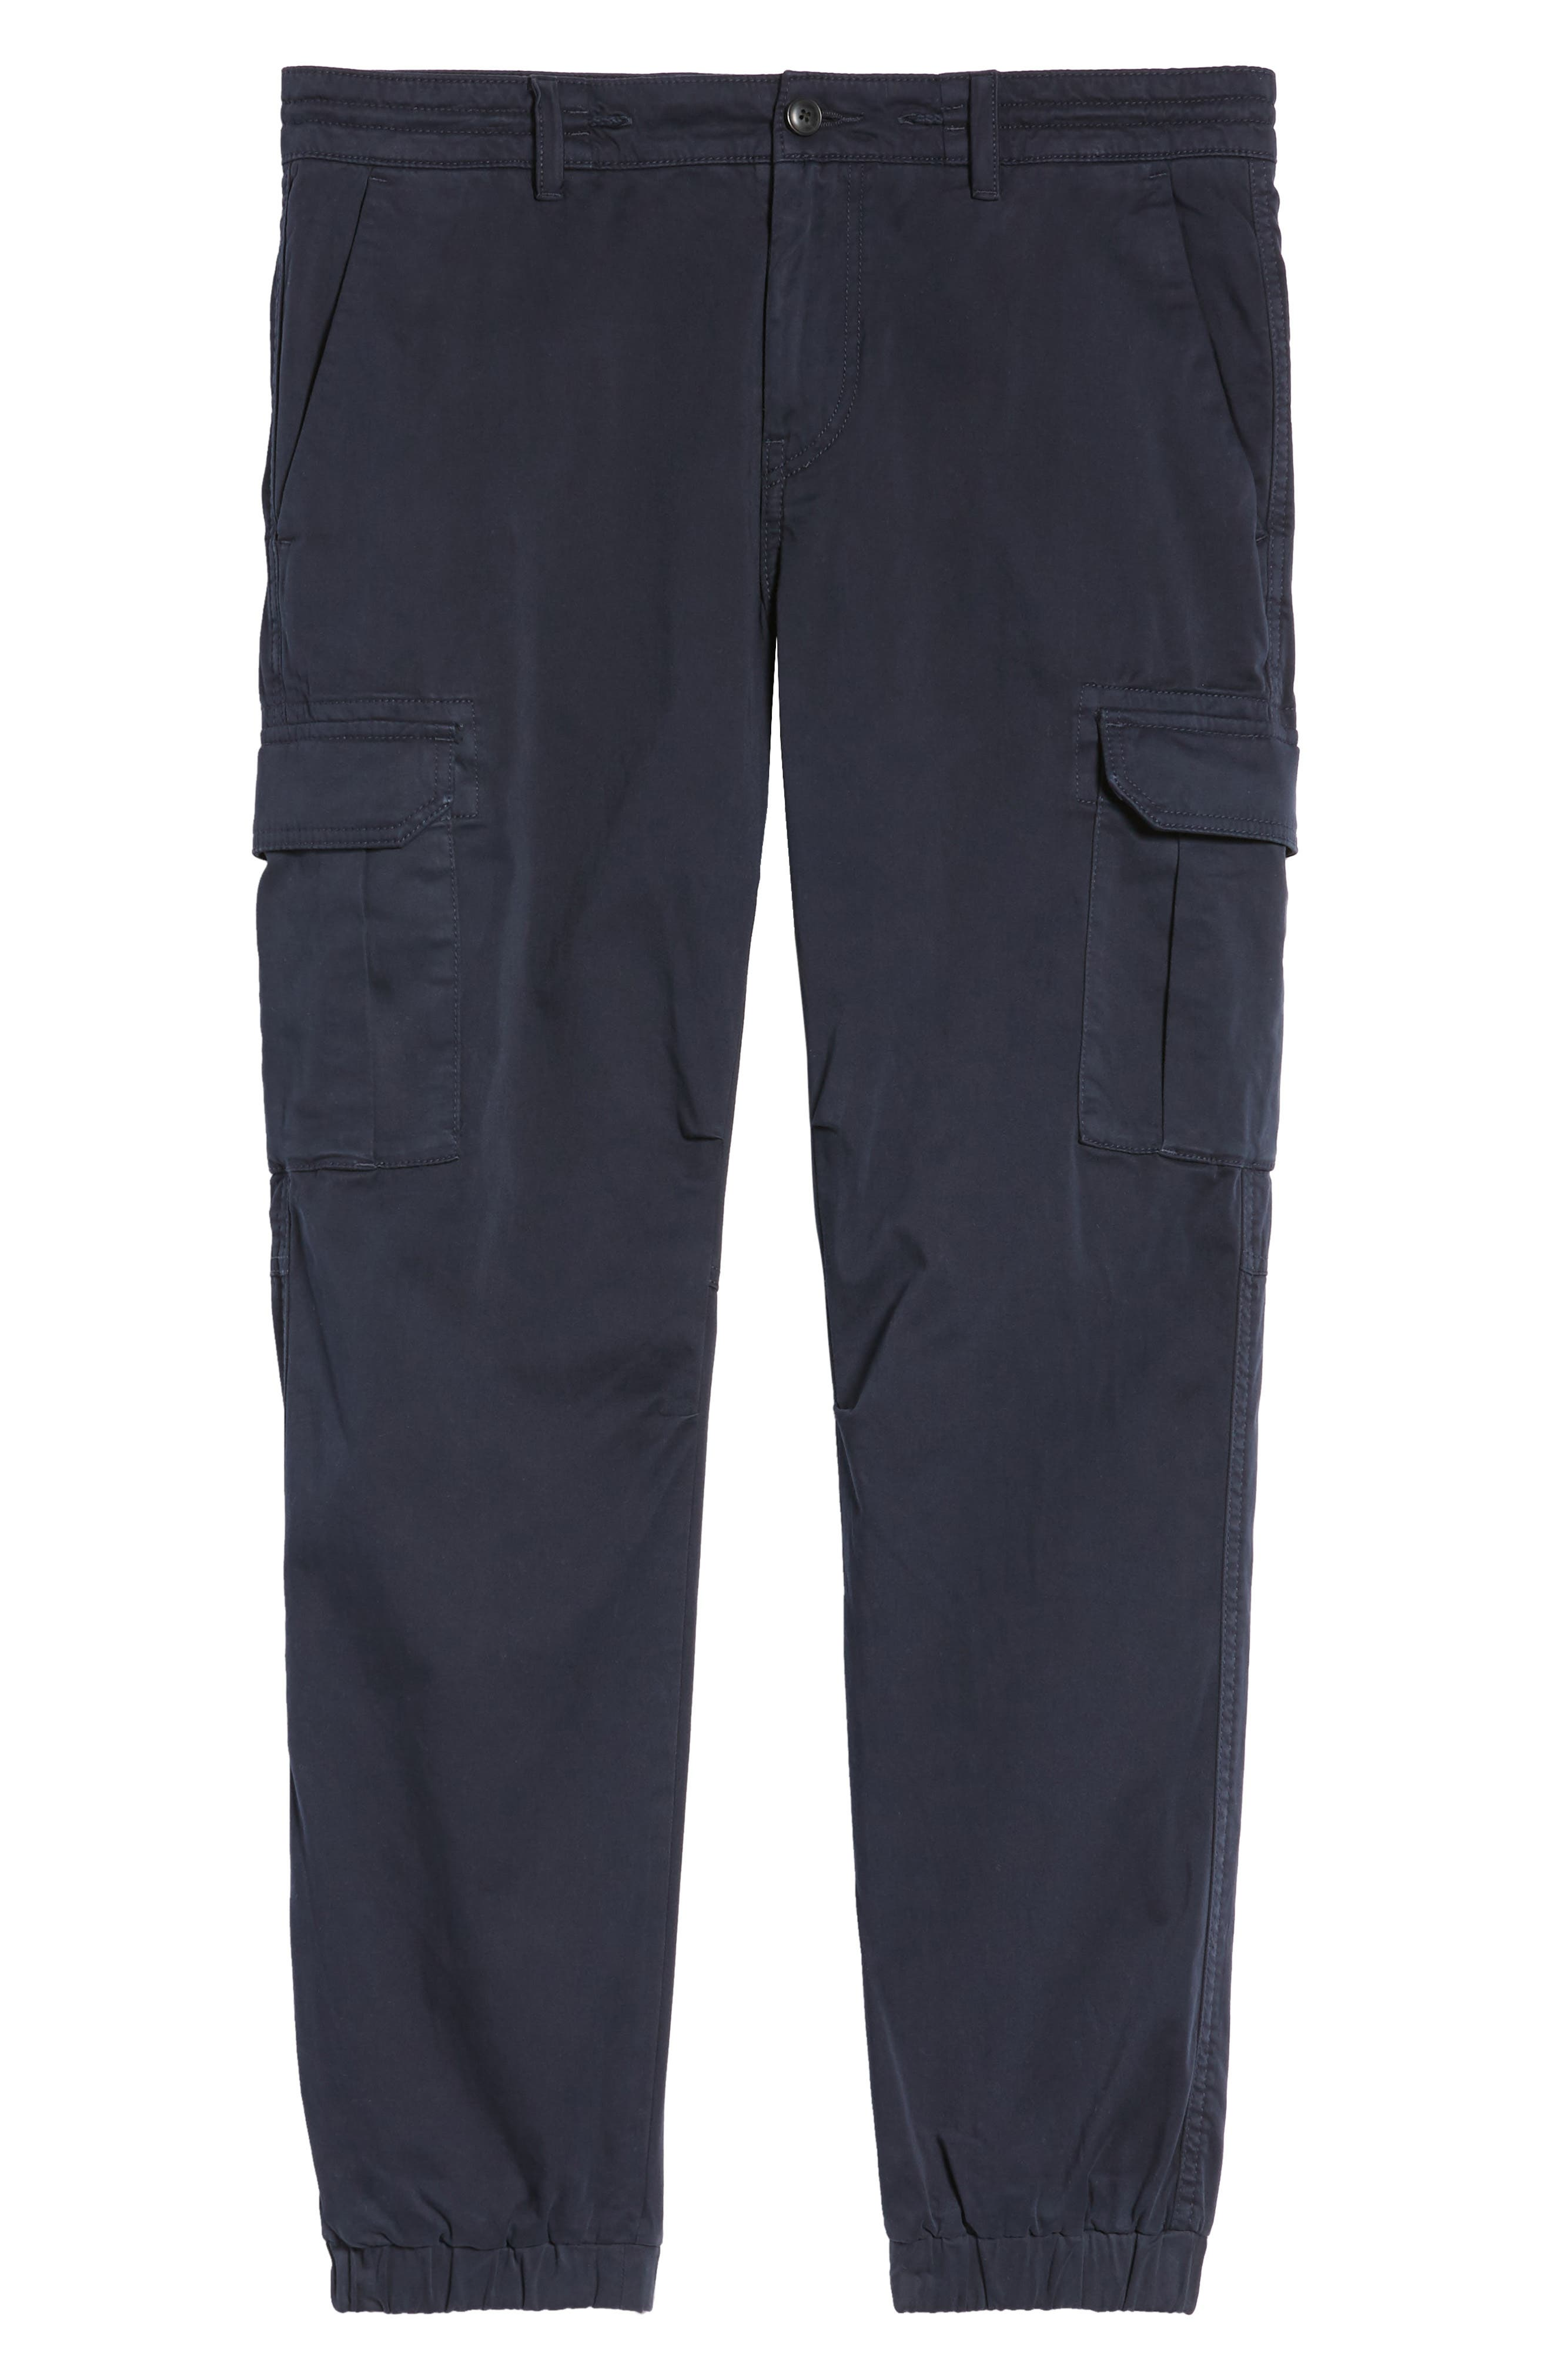 Shay 2 Cargo Pants,                             Alternate thumbnail 6, color,                             404